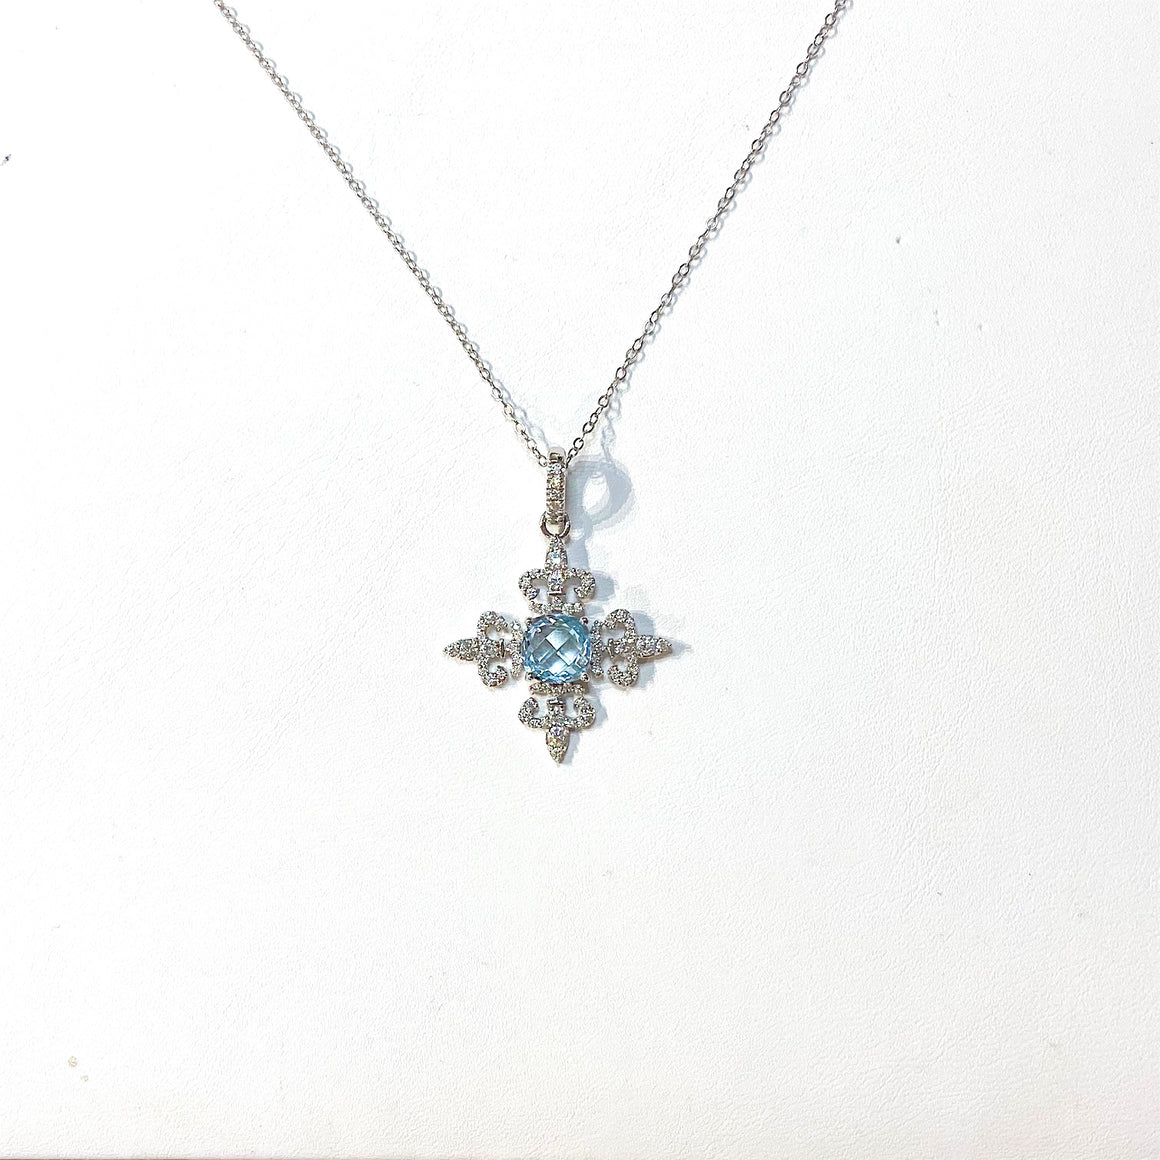 Swiss Blue Topaz and Diamond 4-Way Fleur de Lis Necklace by Lisa Nik - Talisman Collection Fine Jewelers